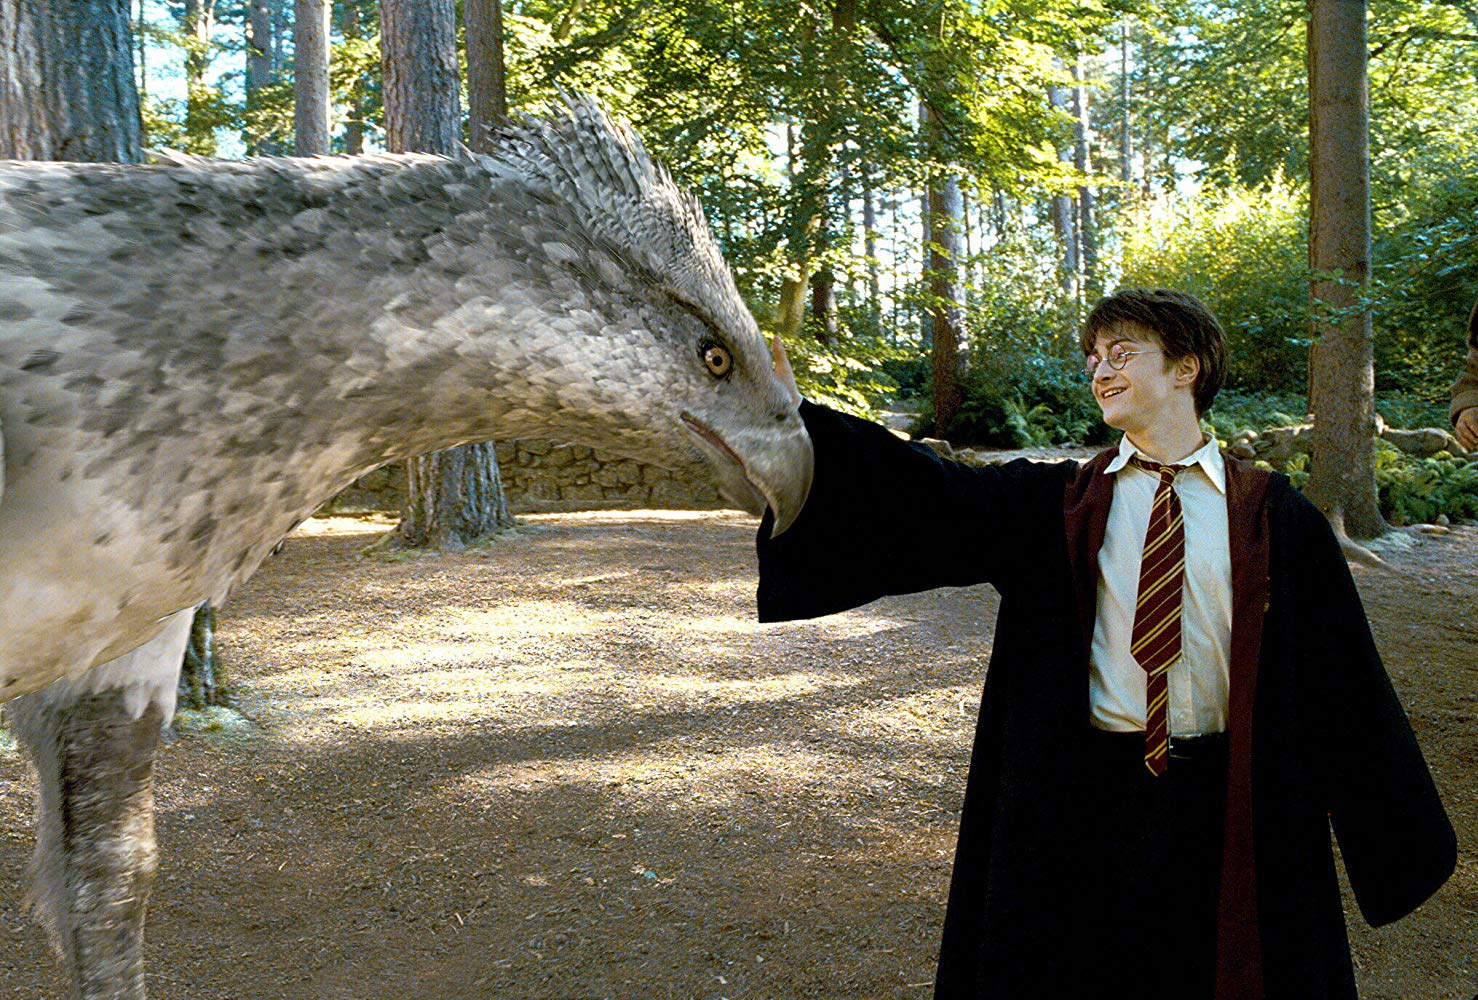 Harry Potter (Daniel Radcliffe) meets the Hippogriff in Harry Potter and the Prisoner of Azkaban (2004)